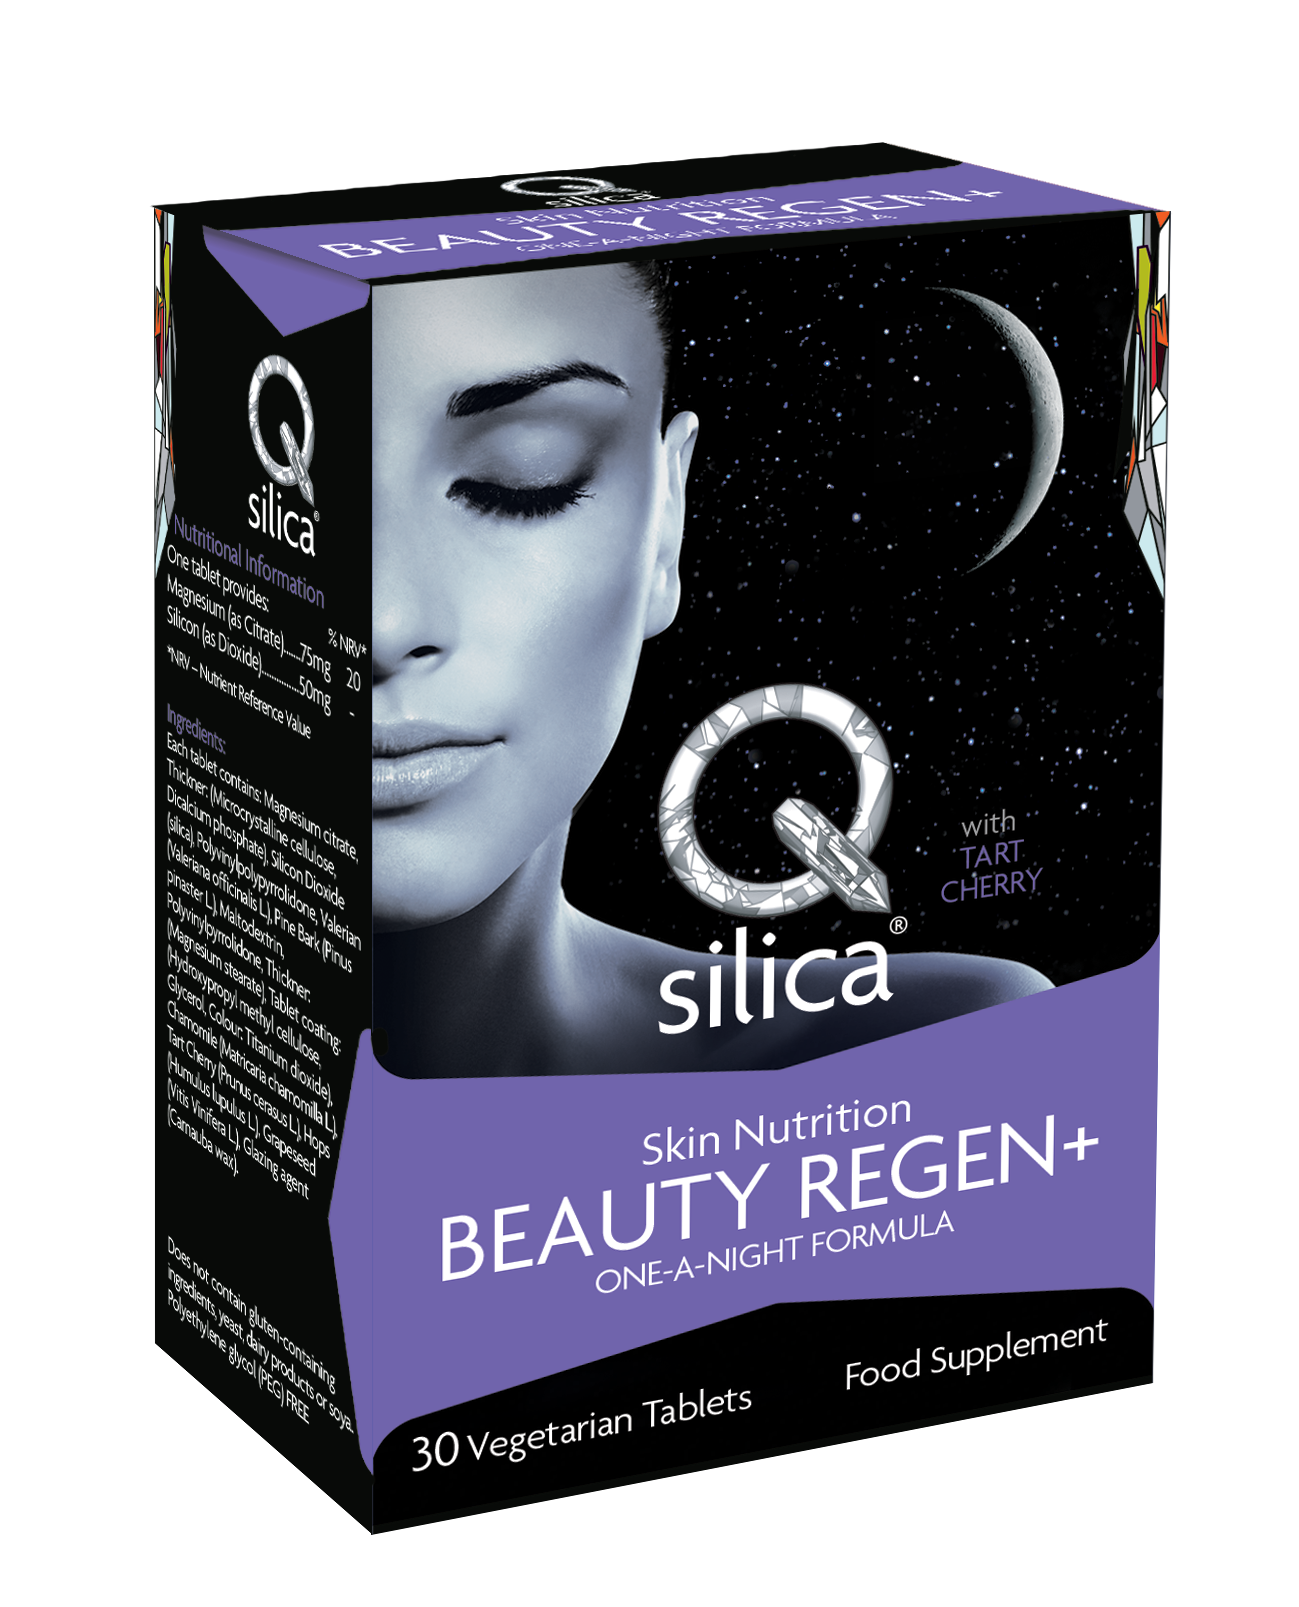 Qsilica BEAUTY REGEN+ Tablets are formulated to provide a